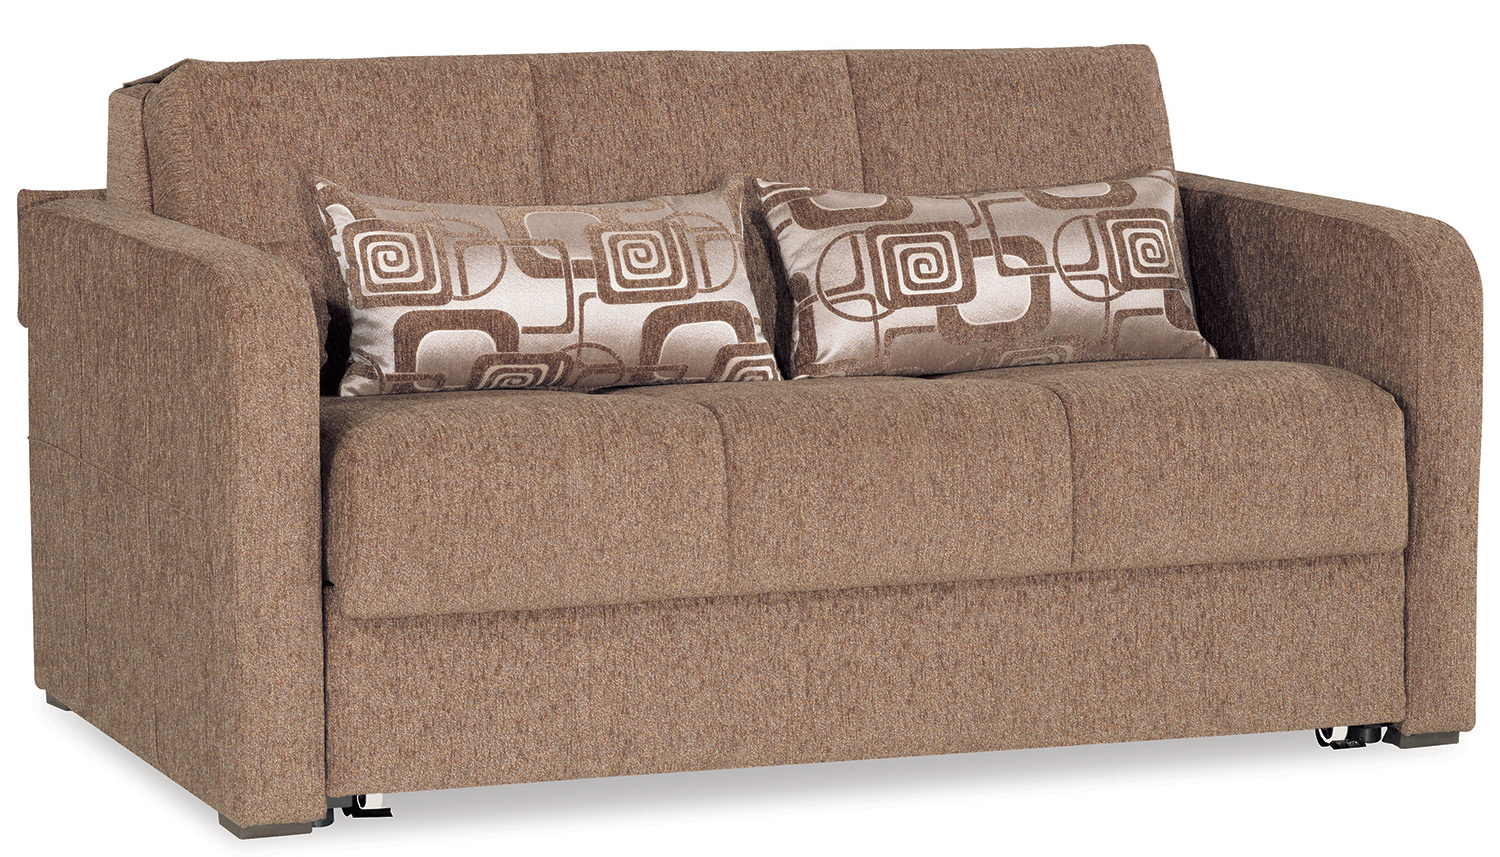 Fit - Loveseat Bed - Brown